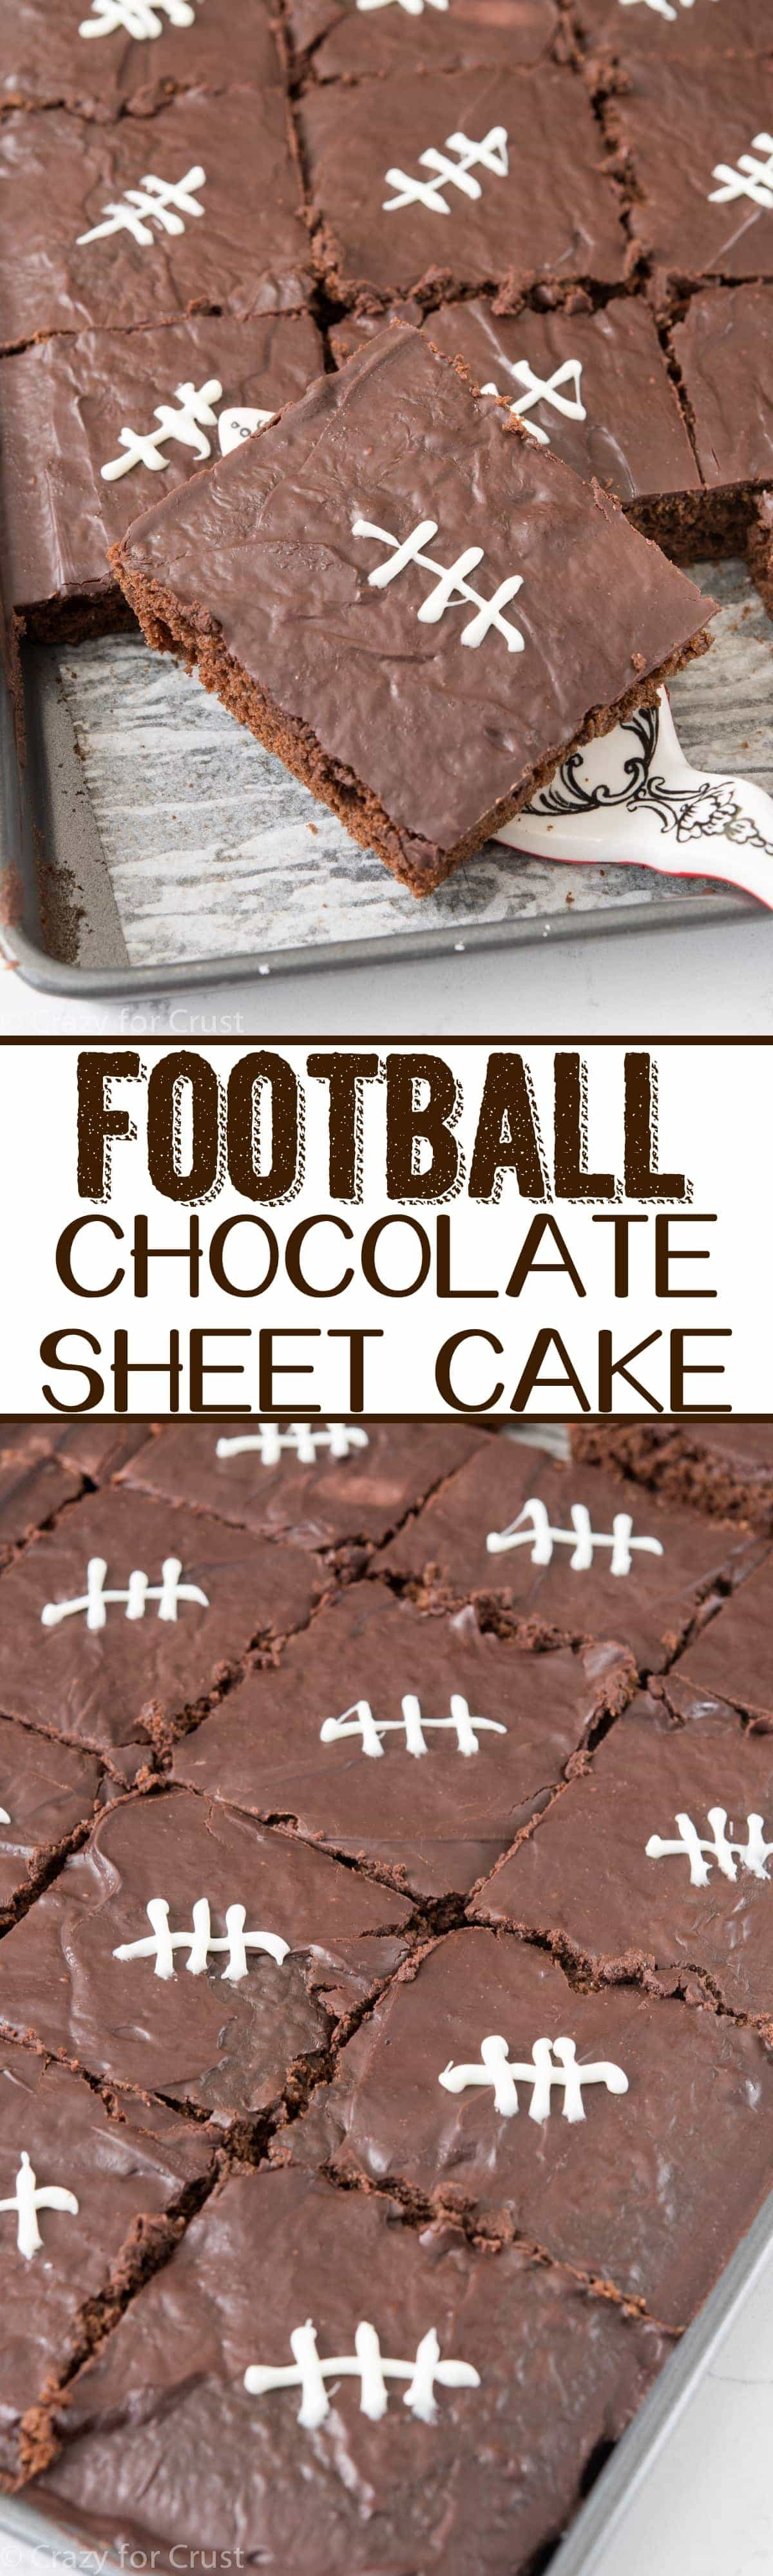 Turn an easy BETTER chocolate sheet cake recipe into one that's perfect for watching FOOTBALL! It's a FOOTBALL Chocolate Sheet Cake!